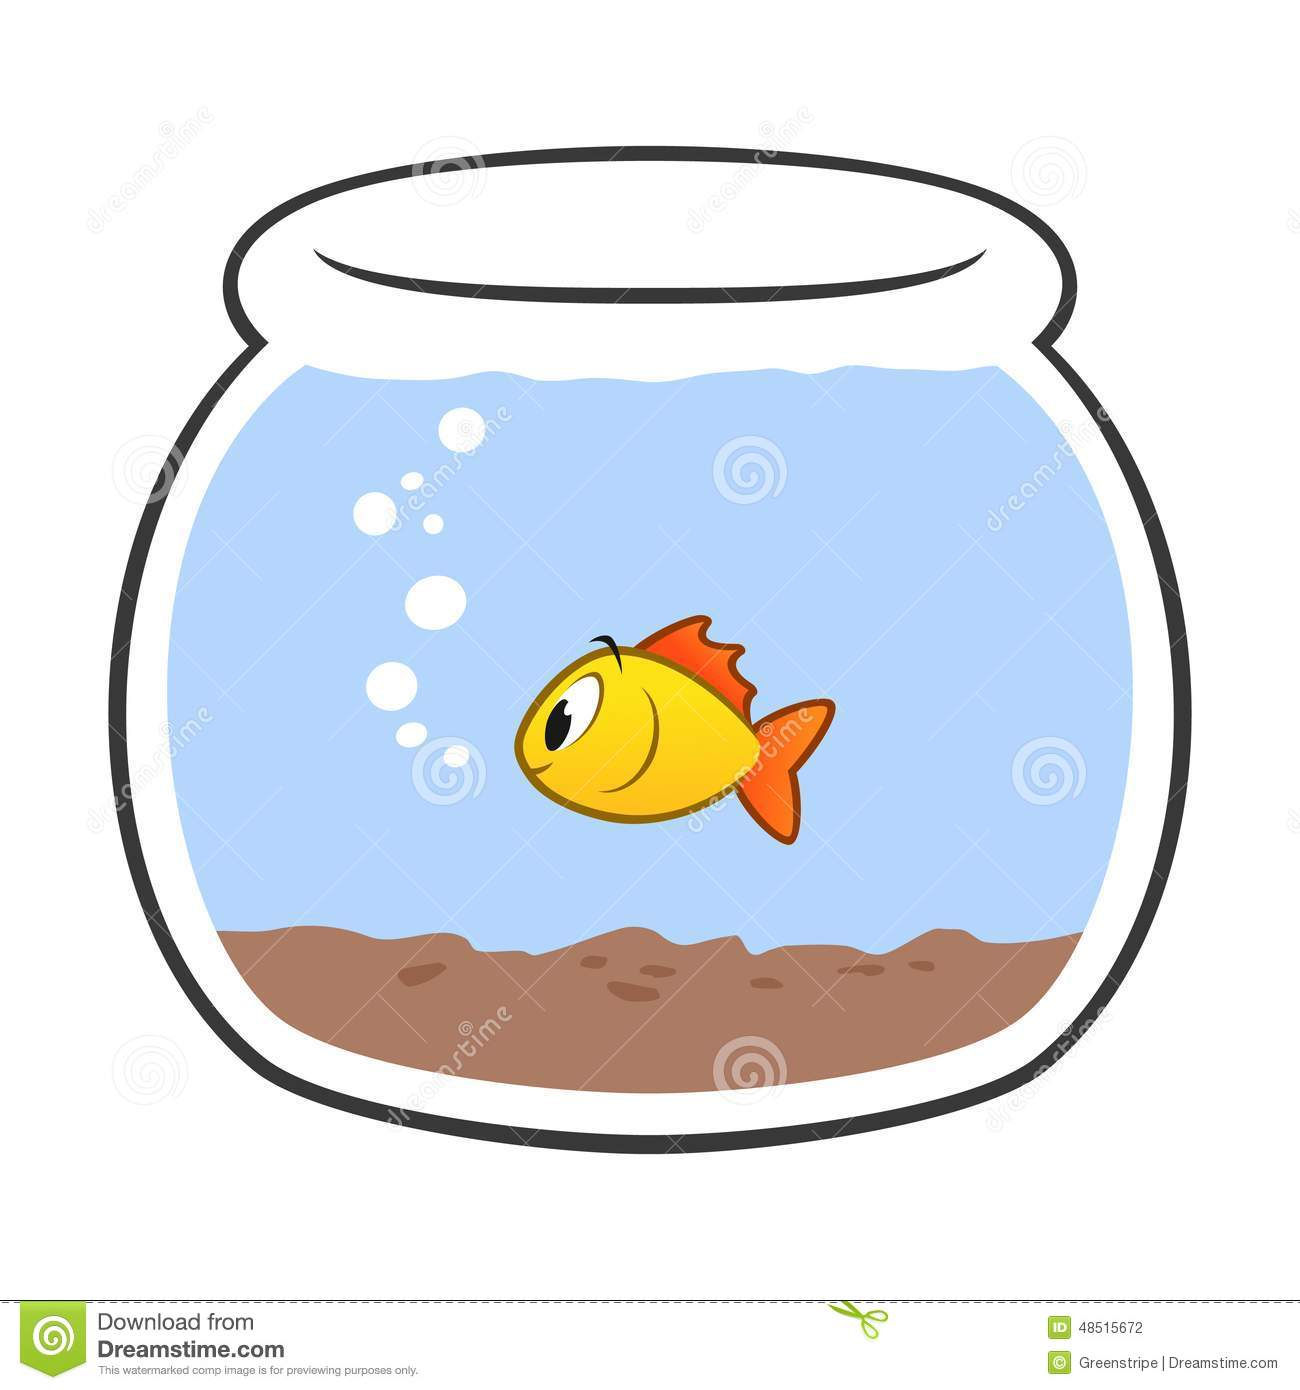 Fishbowl Clipart